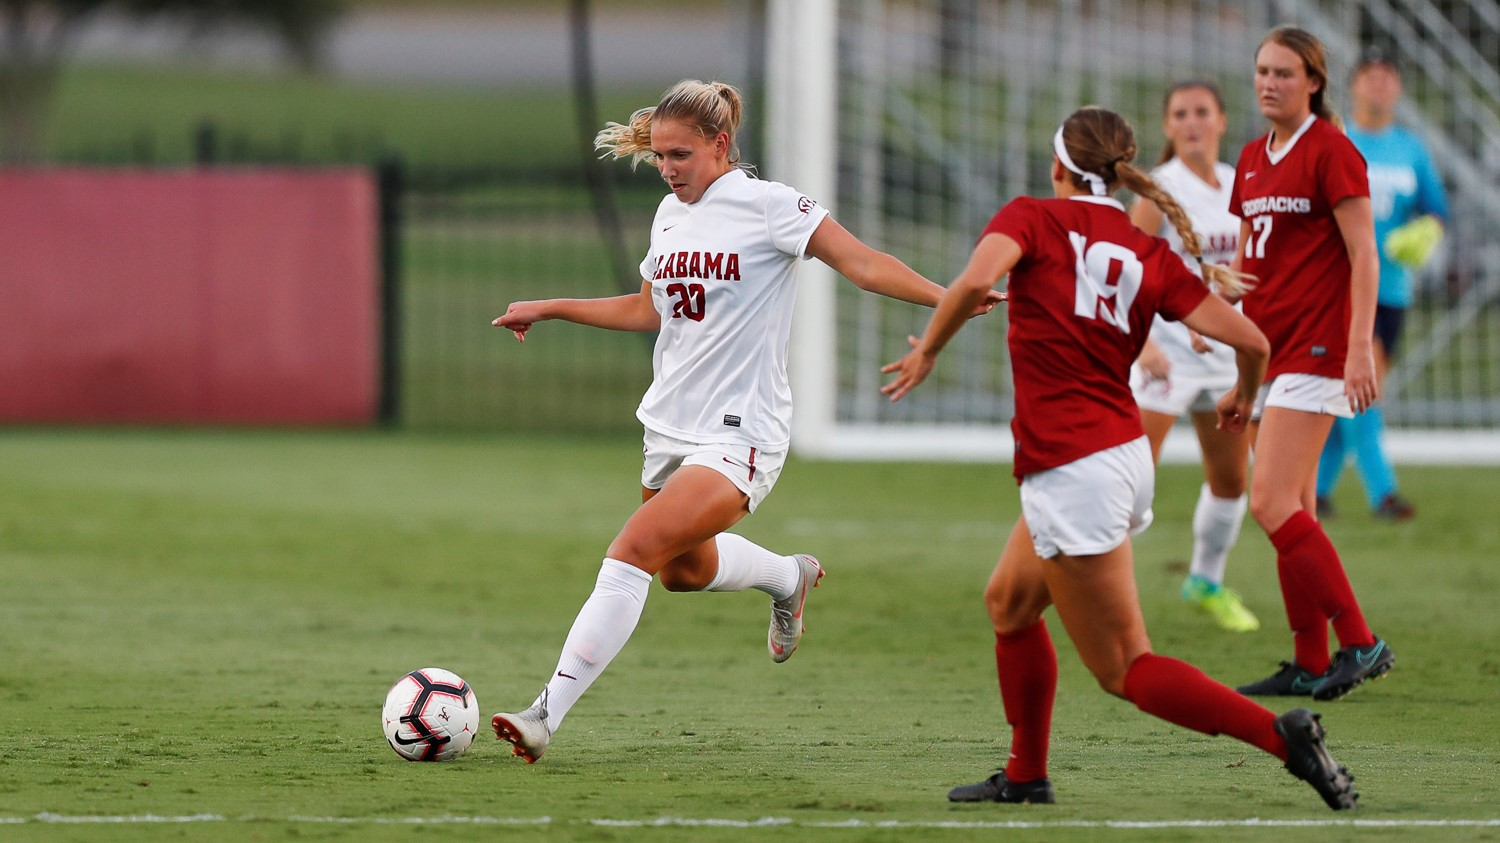 alabama soccer battles in a 1 0 loss to arkansas university of